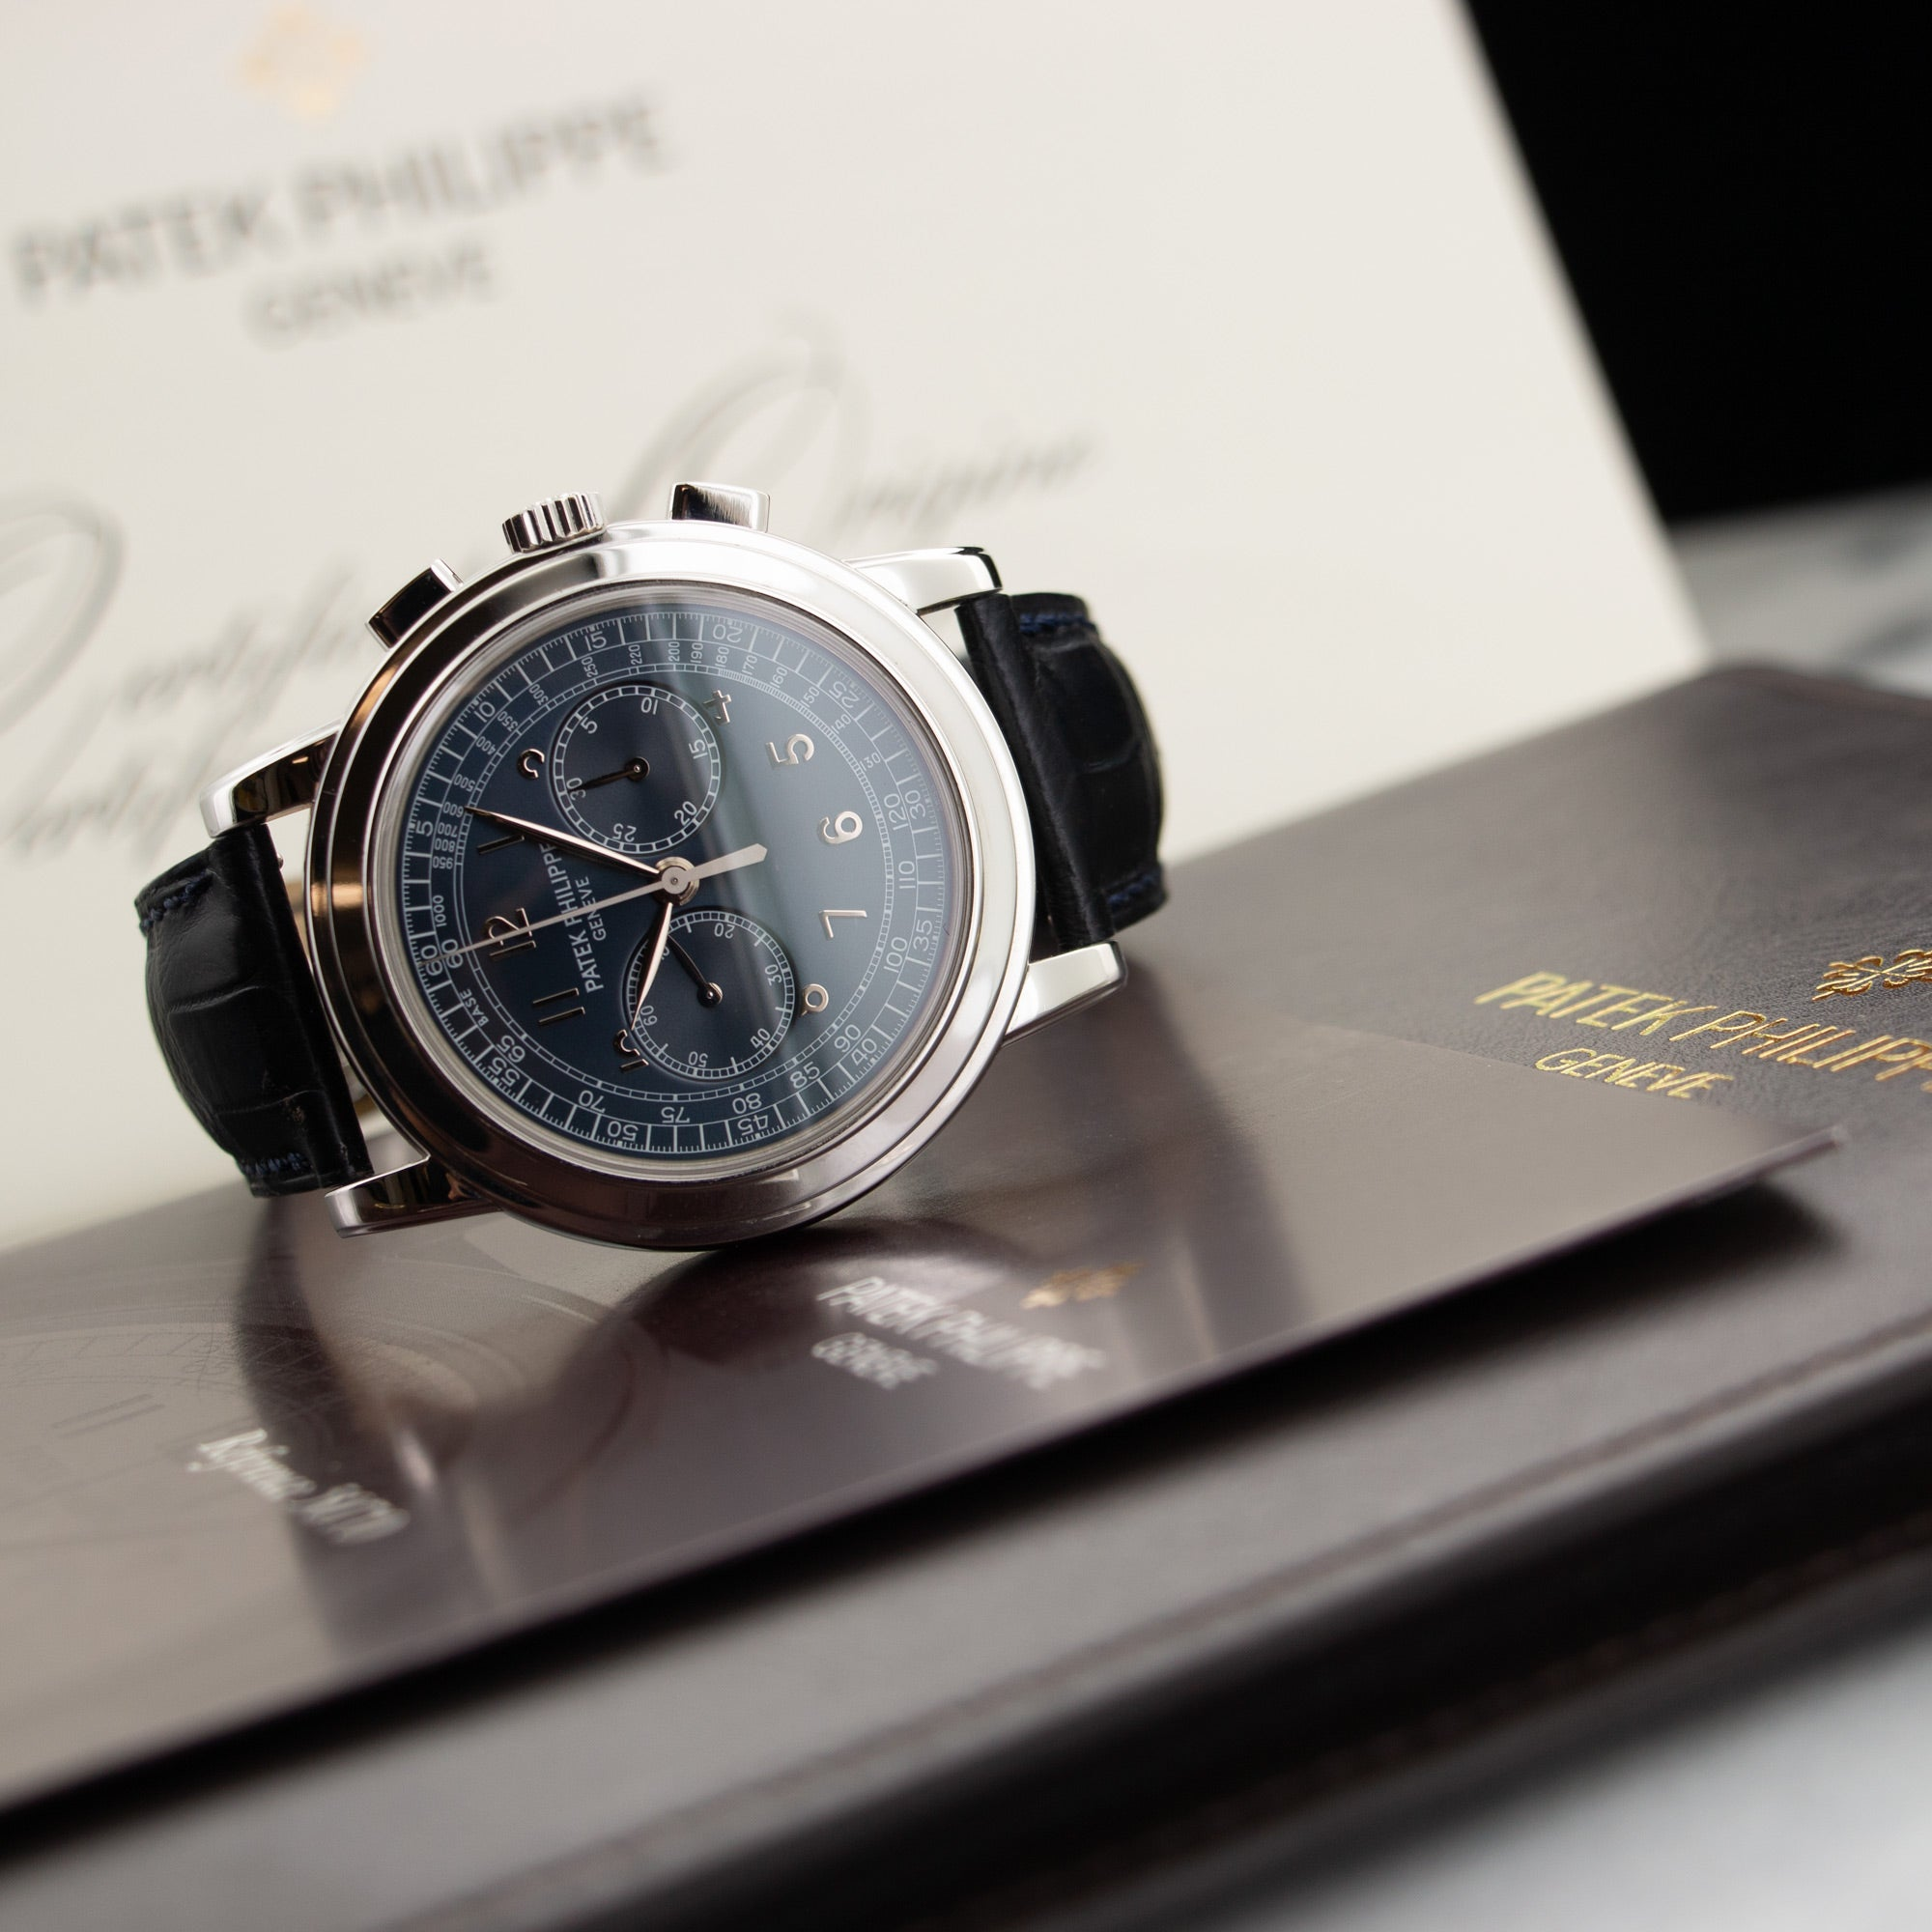 Patek Philippe Chronograph 5070P-001 Platinum  Likely Never Polished, Original Finish Gents Platinum Blue 42mm Manual 2009 Dark Blue Crocodile Original Box and Certificate